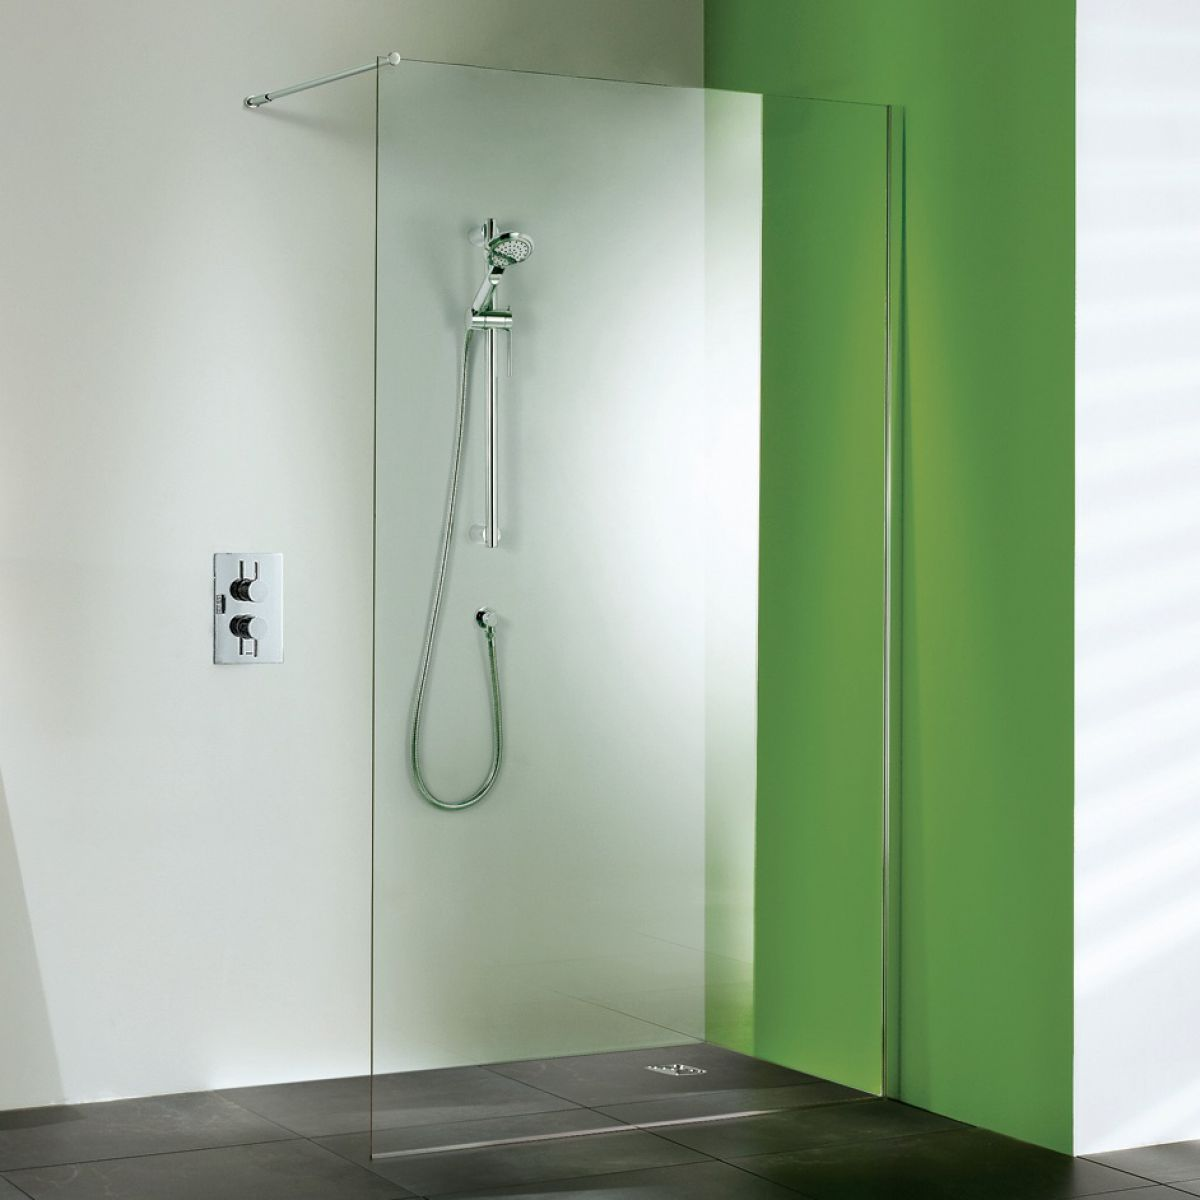 diy sizes dp glass panel enclosure wet room uk amazon walk co tools screen all in ibathuk shower